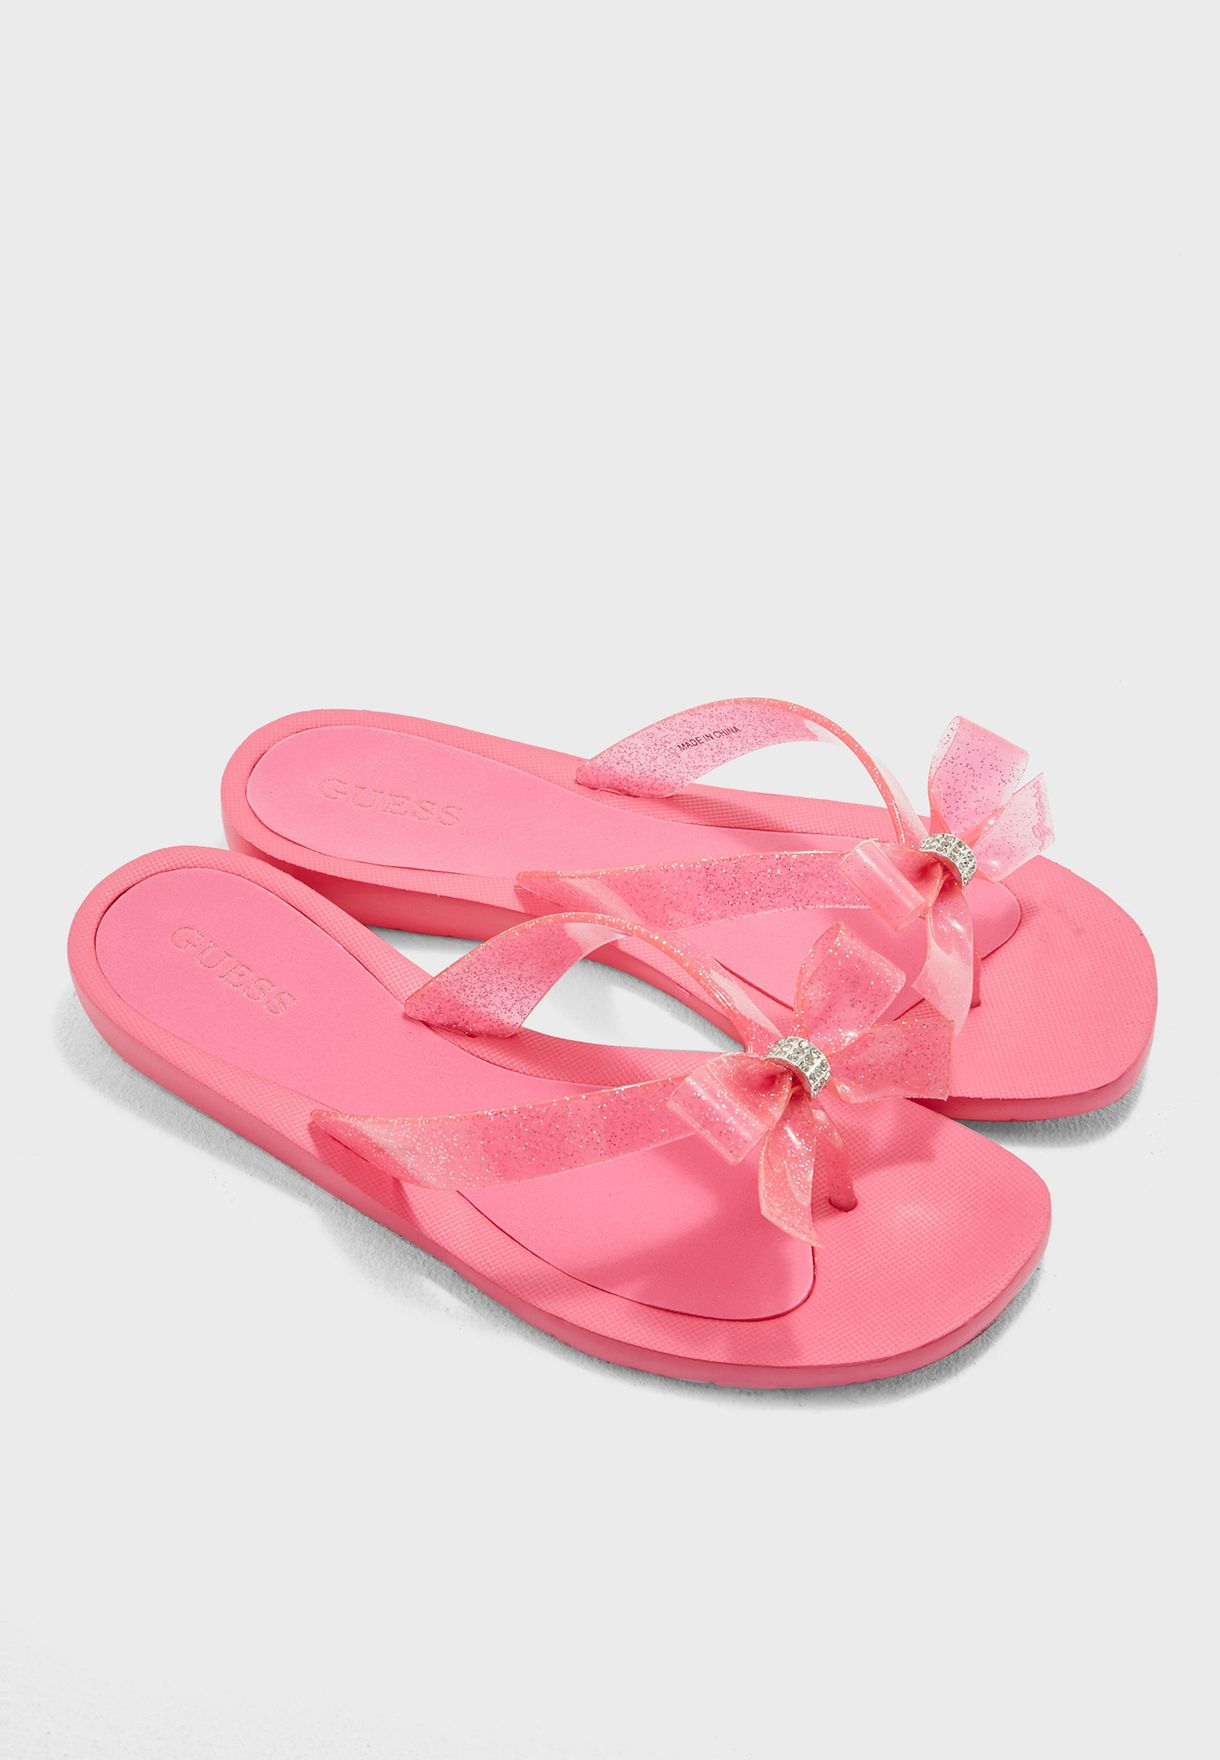 3029fe0a20b Shop Guess pink Bow Thong Sandals gwTUTU9 for Women in UAE ...